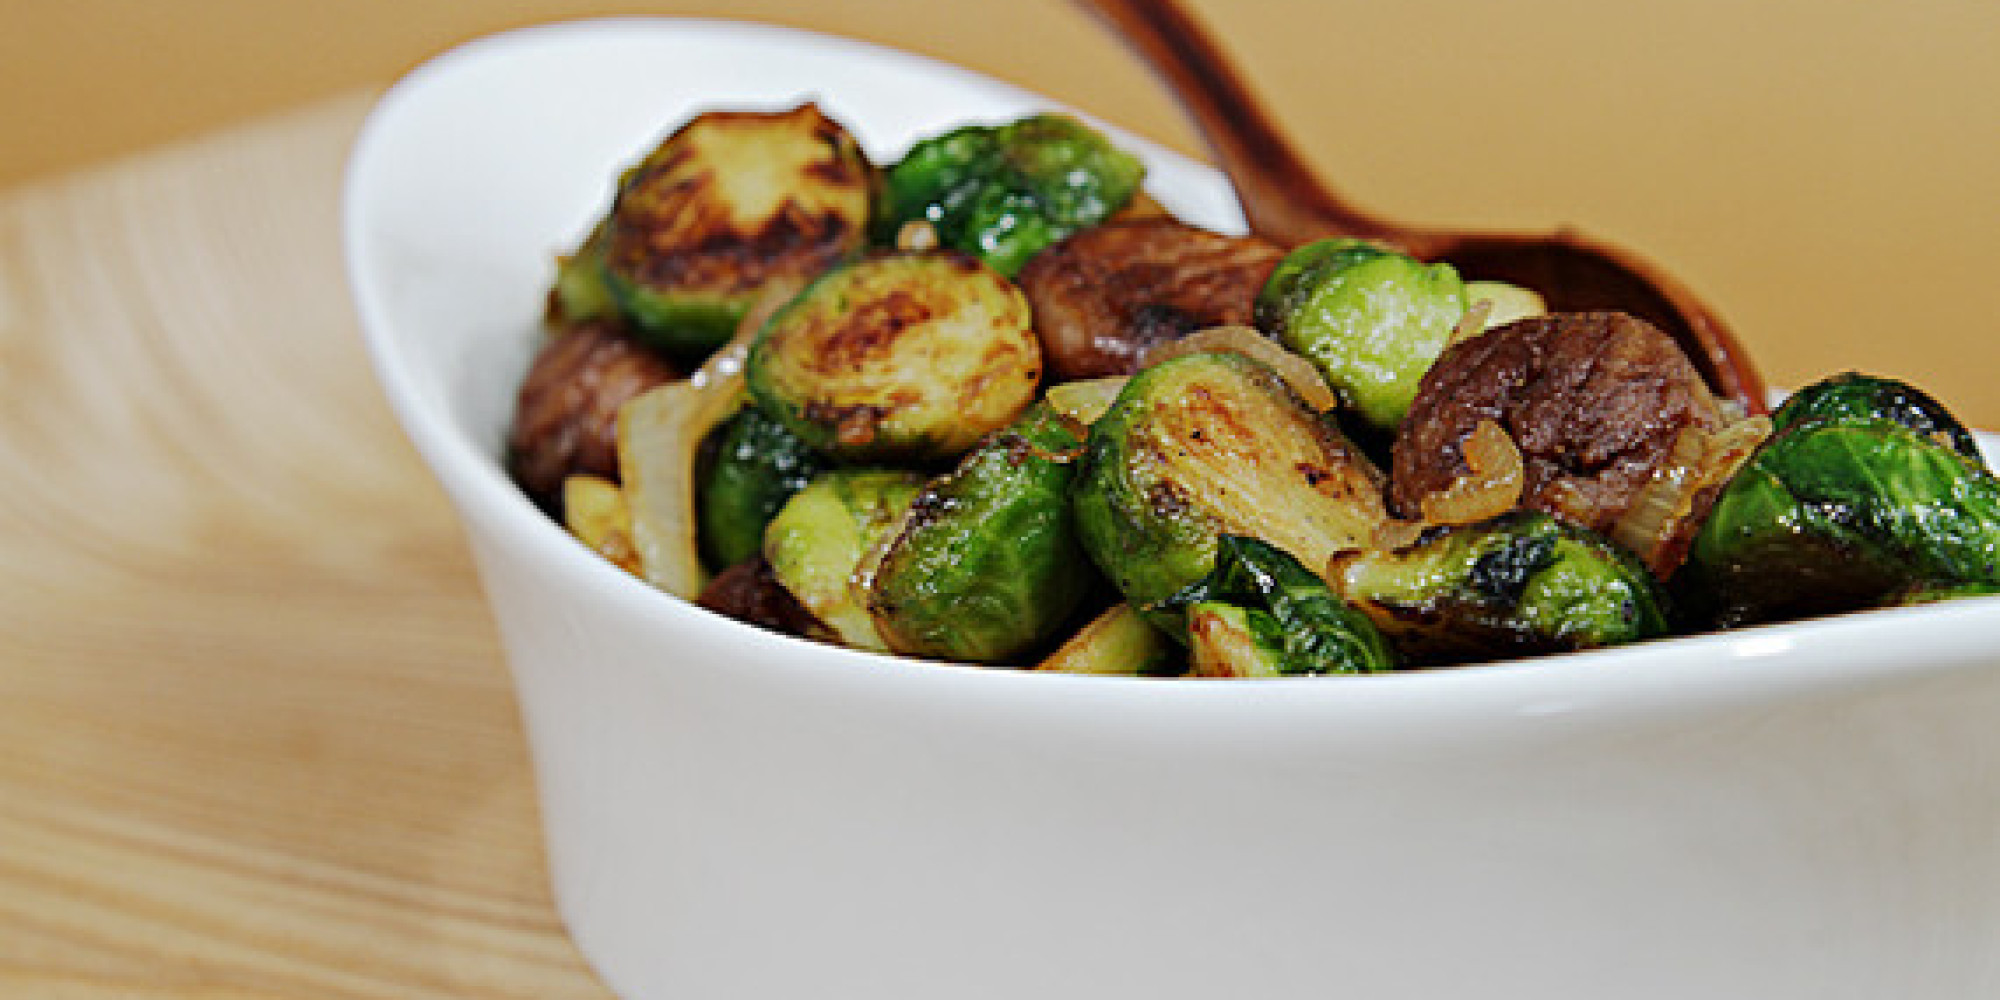 Maple-glazed Pan-roasted Brussels Sprouts With Chestnuts | The ...